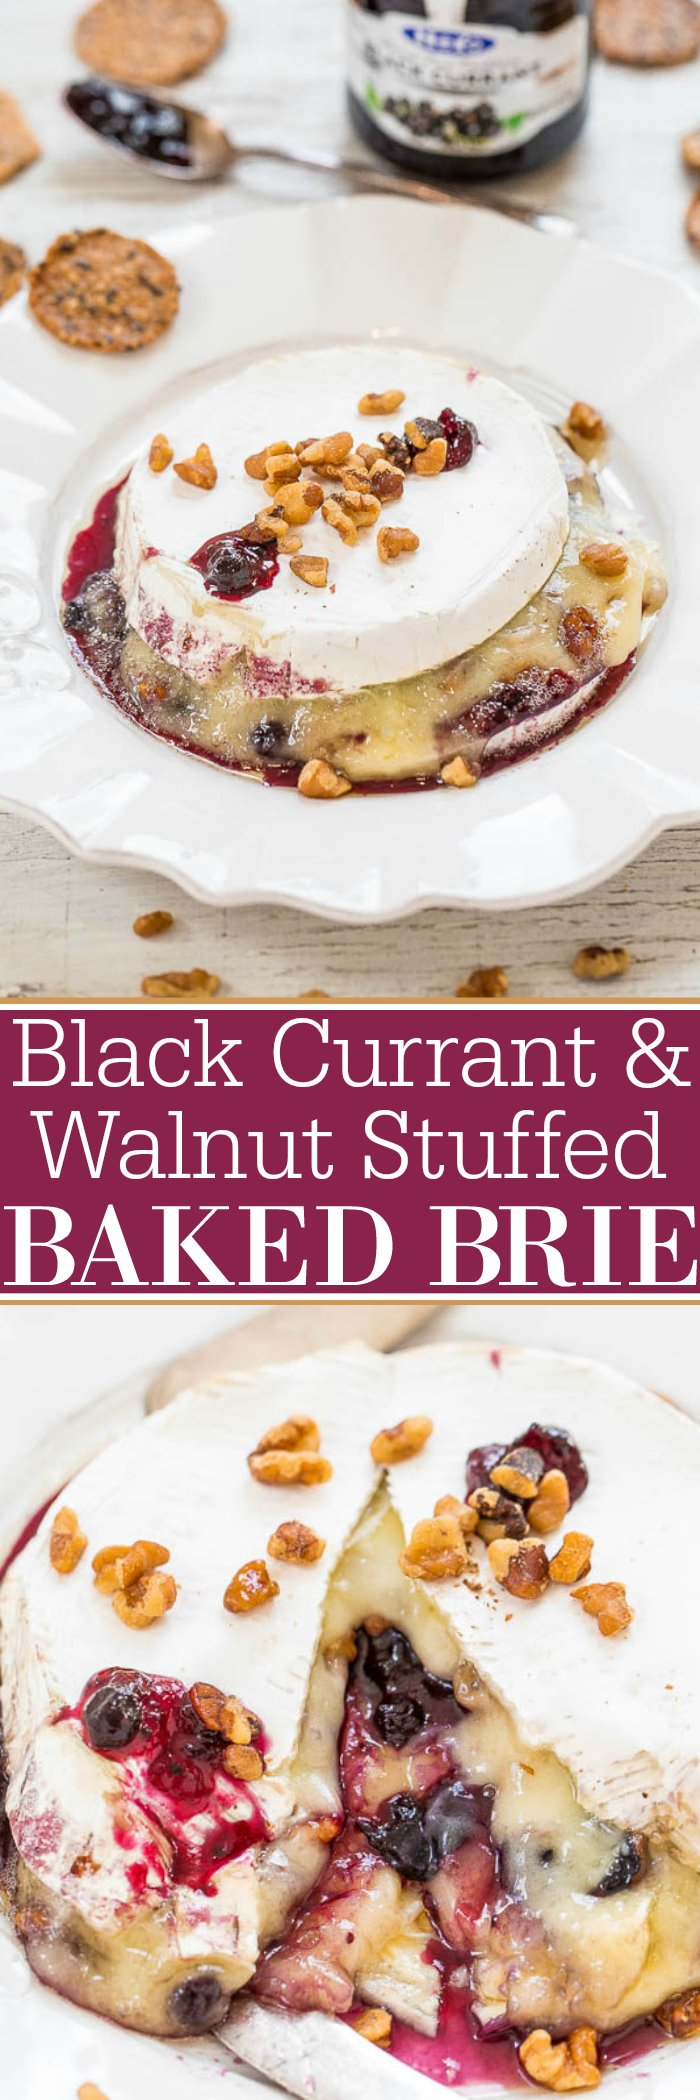 Black Currant and Walnut Stuffed Baked Brie - Gooey, AMAZING, salty-and-sweet!! Stuffed with jam, topped with walnuts, and so EASY! Perfect for holiday entertaining and parties!!